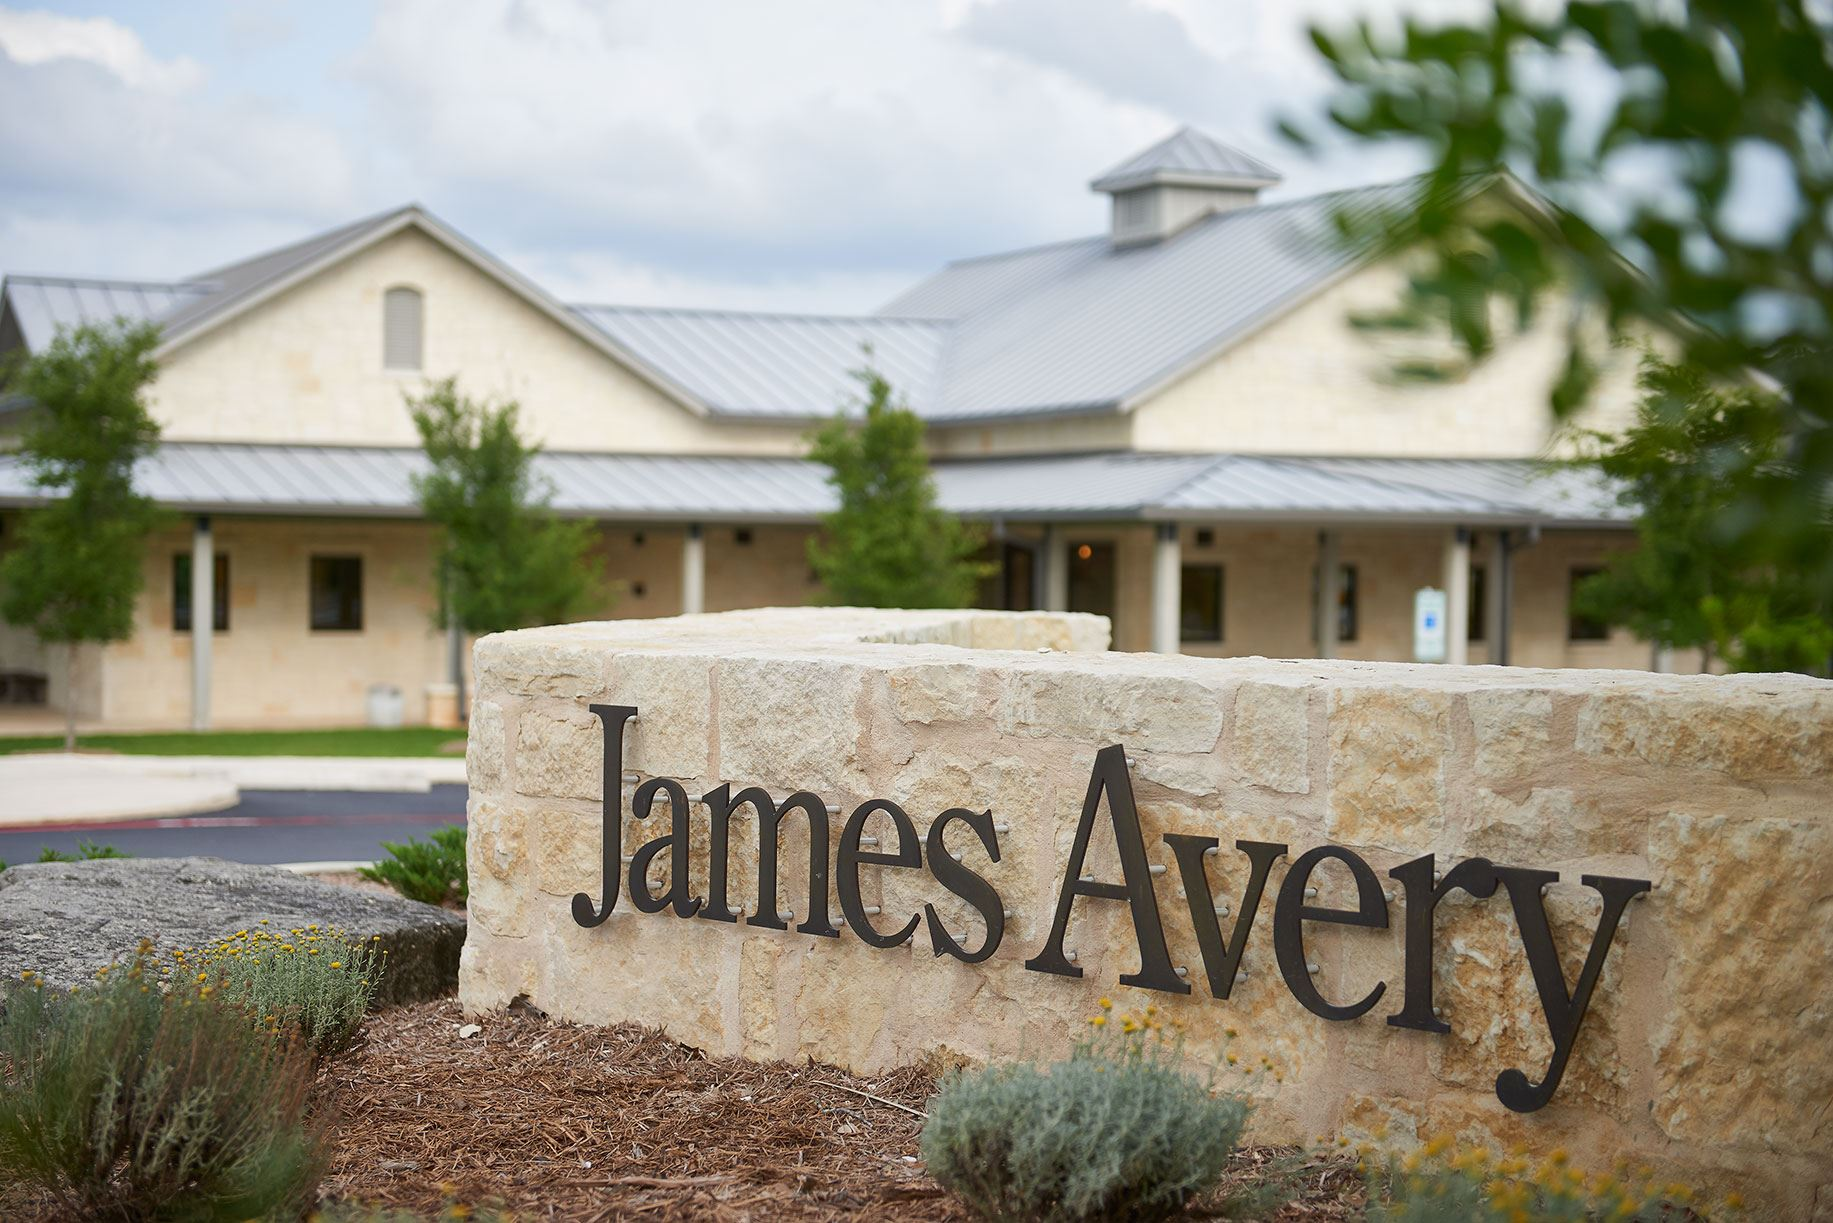 James Avery Visitor Center & Store in Kerrville, TX